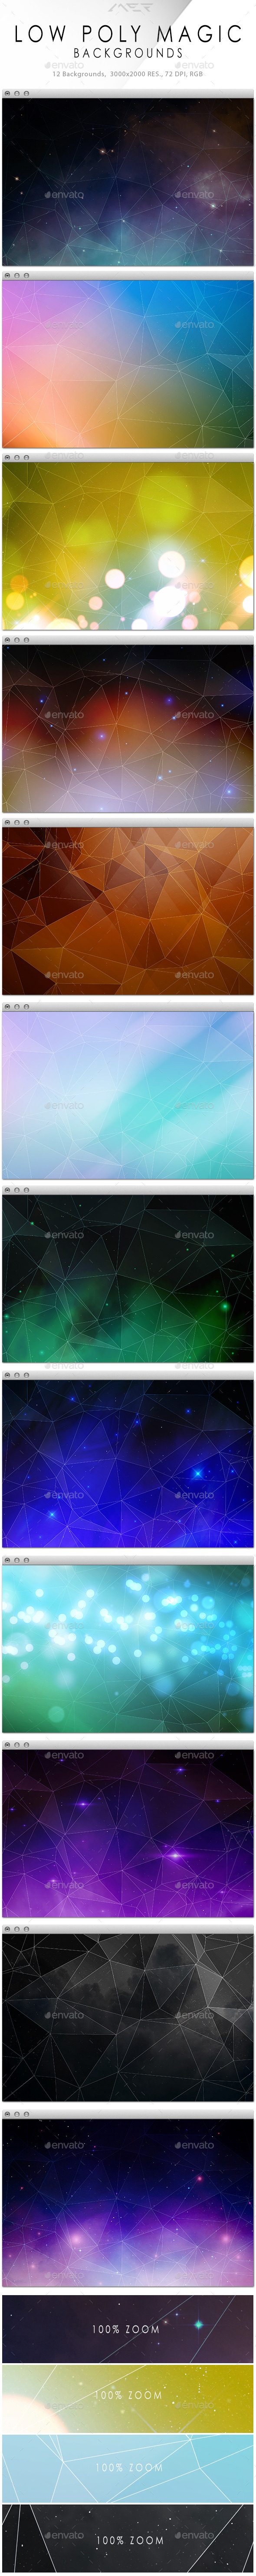 GraphicRiver Low Poly Magic Backgrounds Collection 10111076